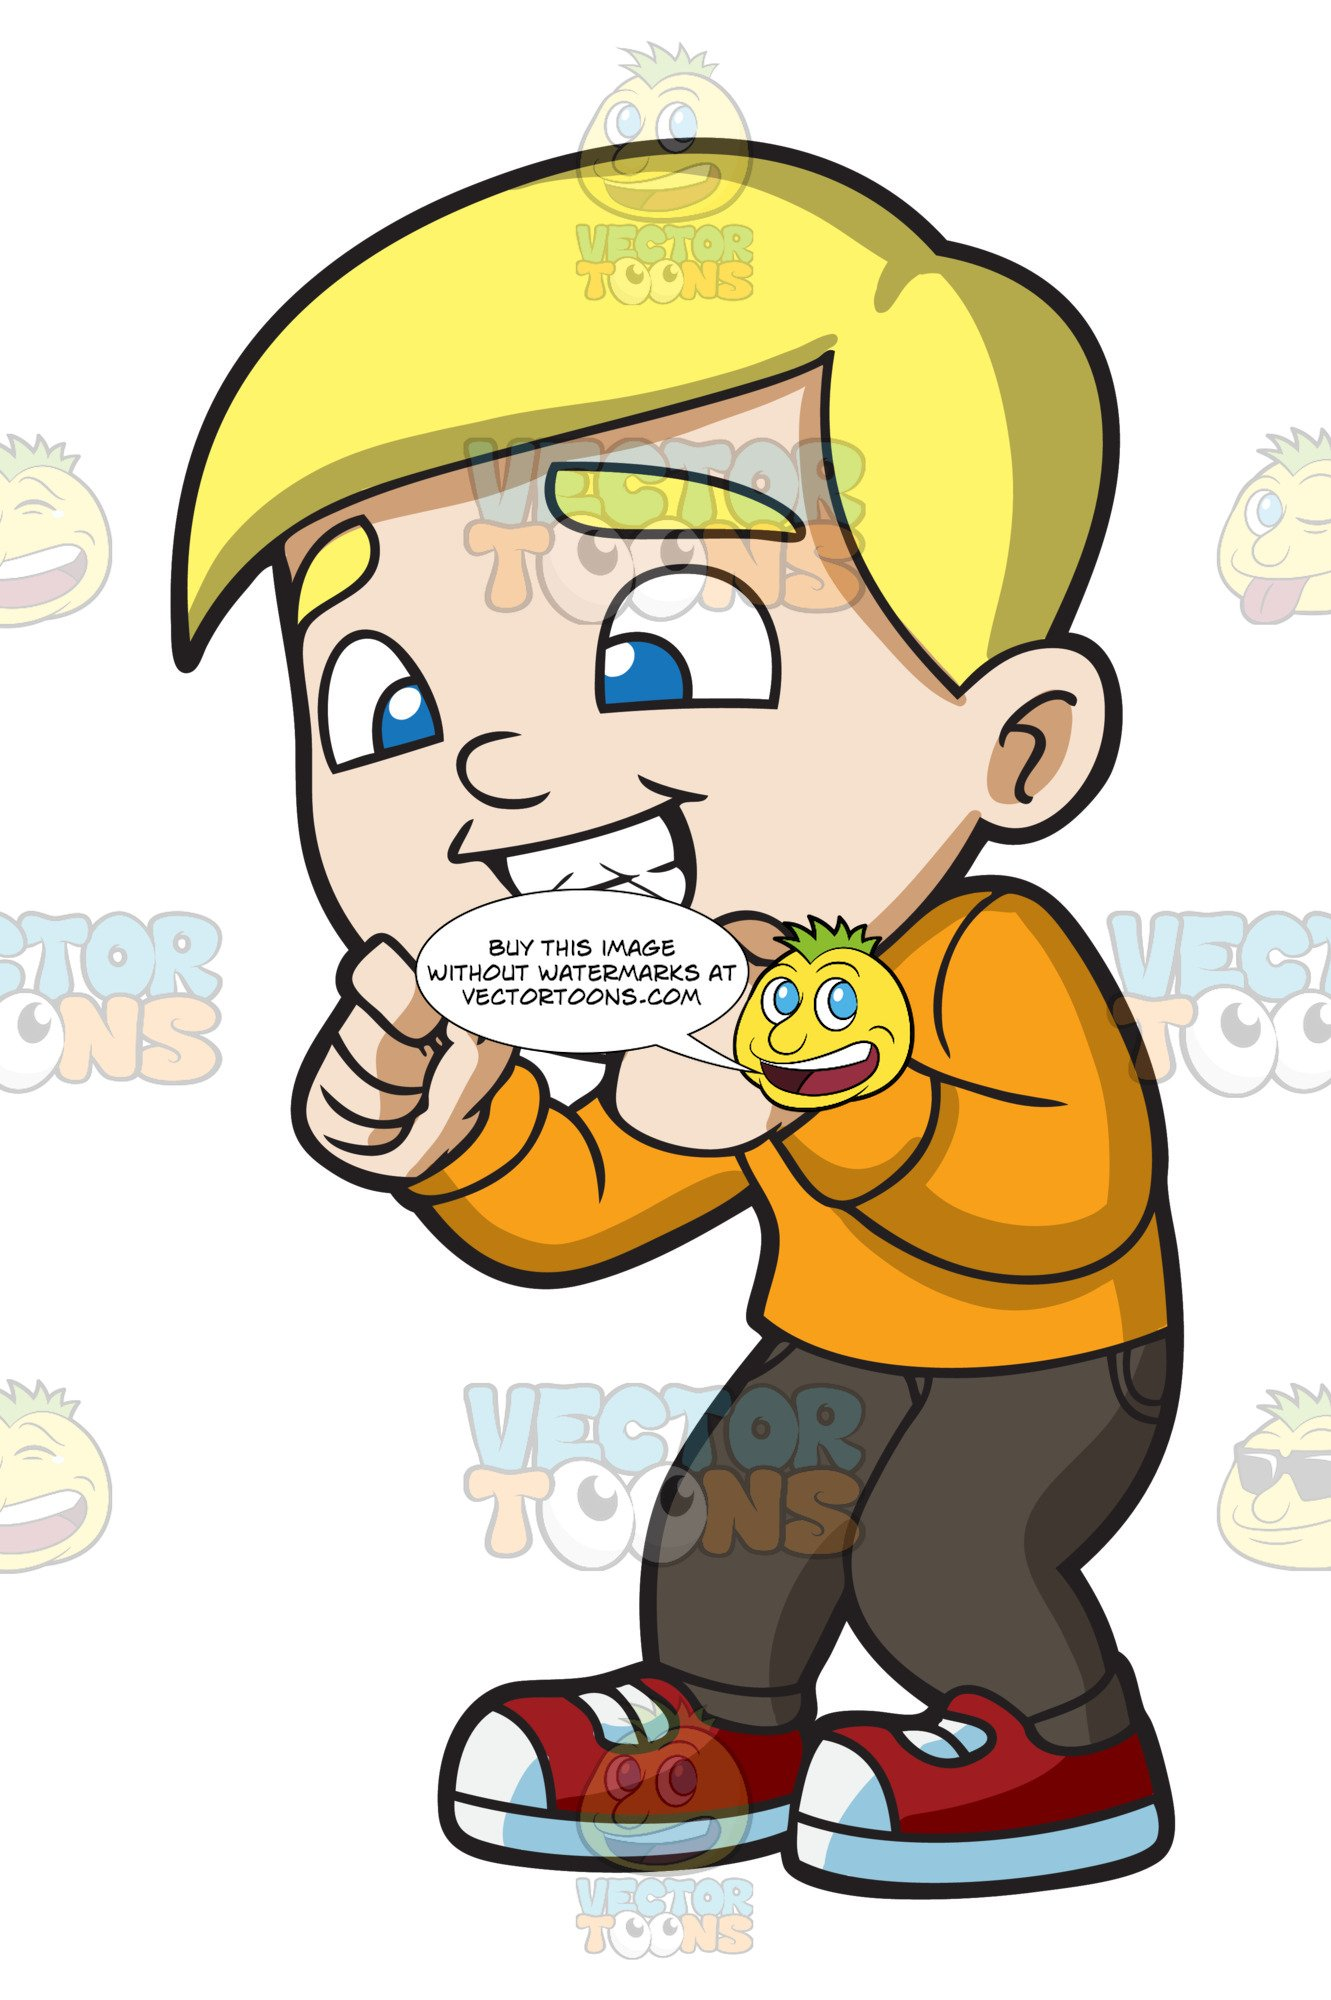 Flossing teeth clipart svg transparent library A Boy Flossing His Teeth After A Meal svg transparent library